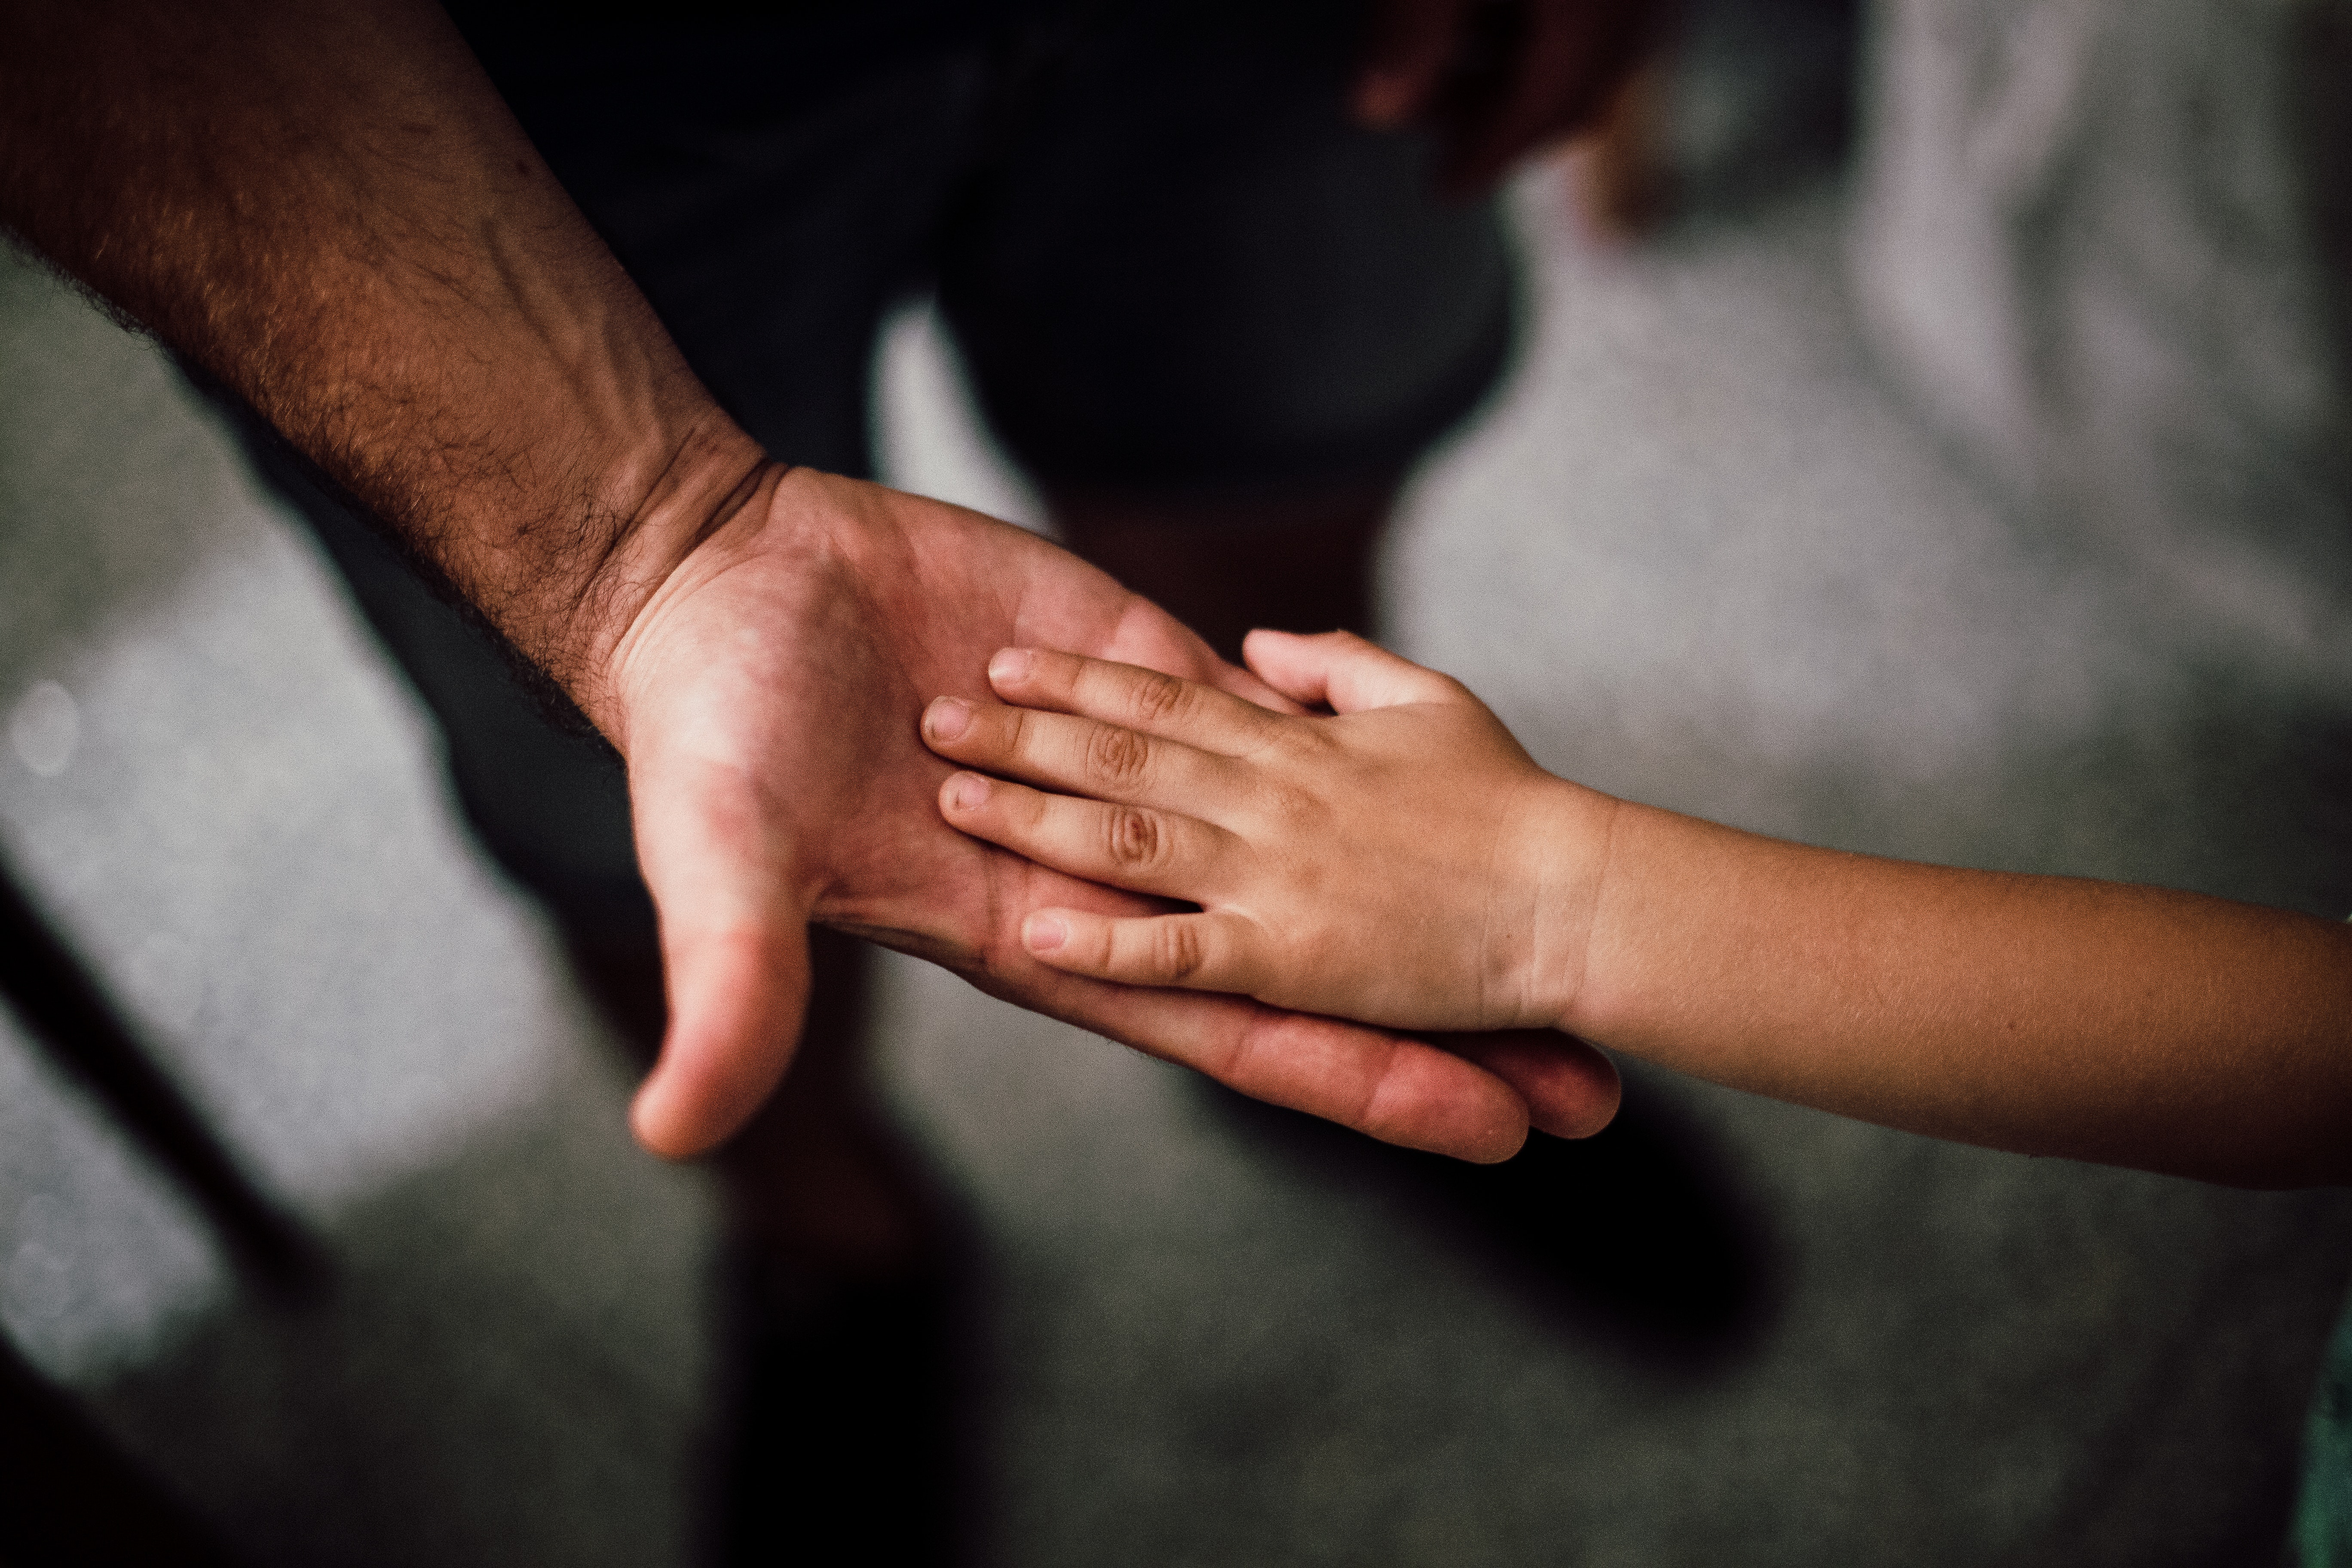 Selective focus photography of a man and a child's hand. | Photo: Pexels